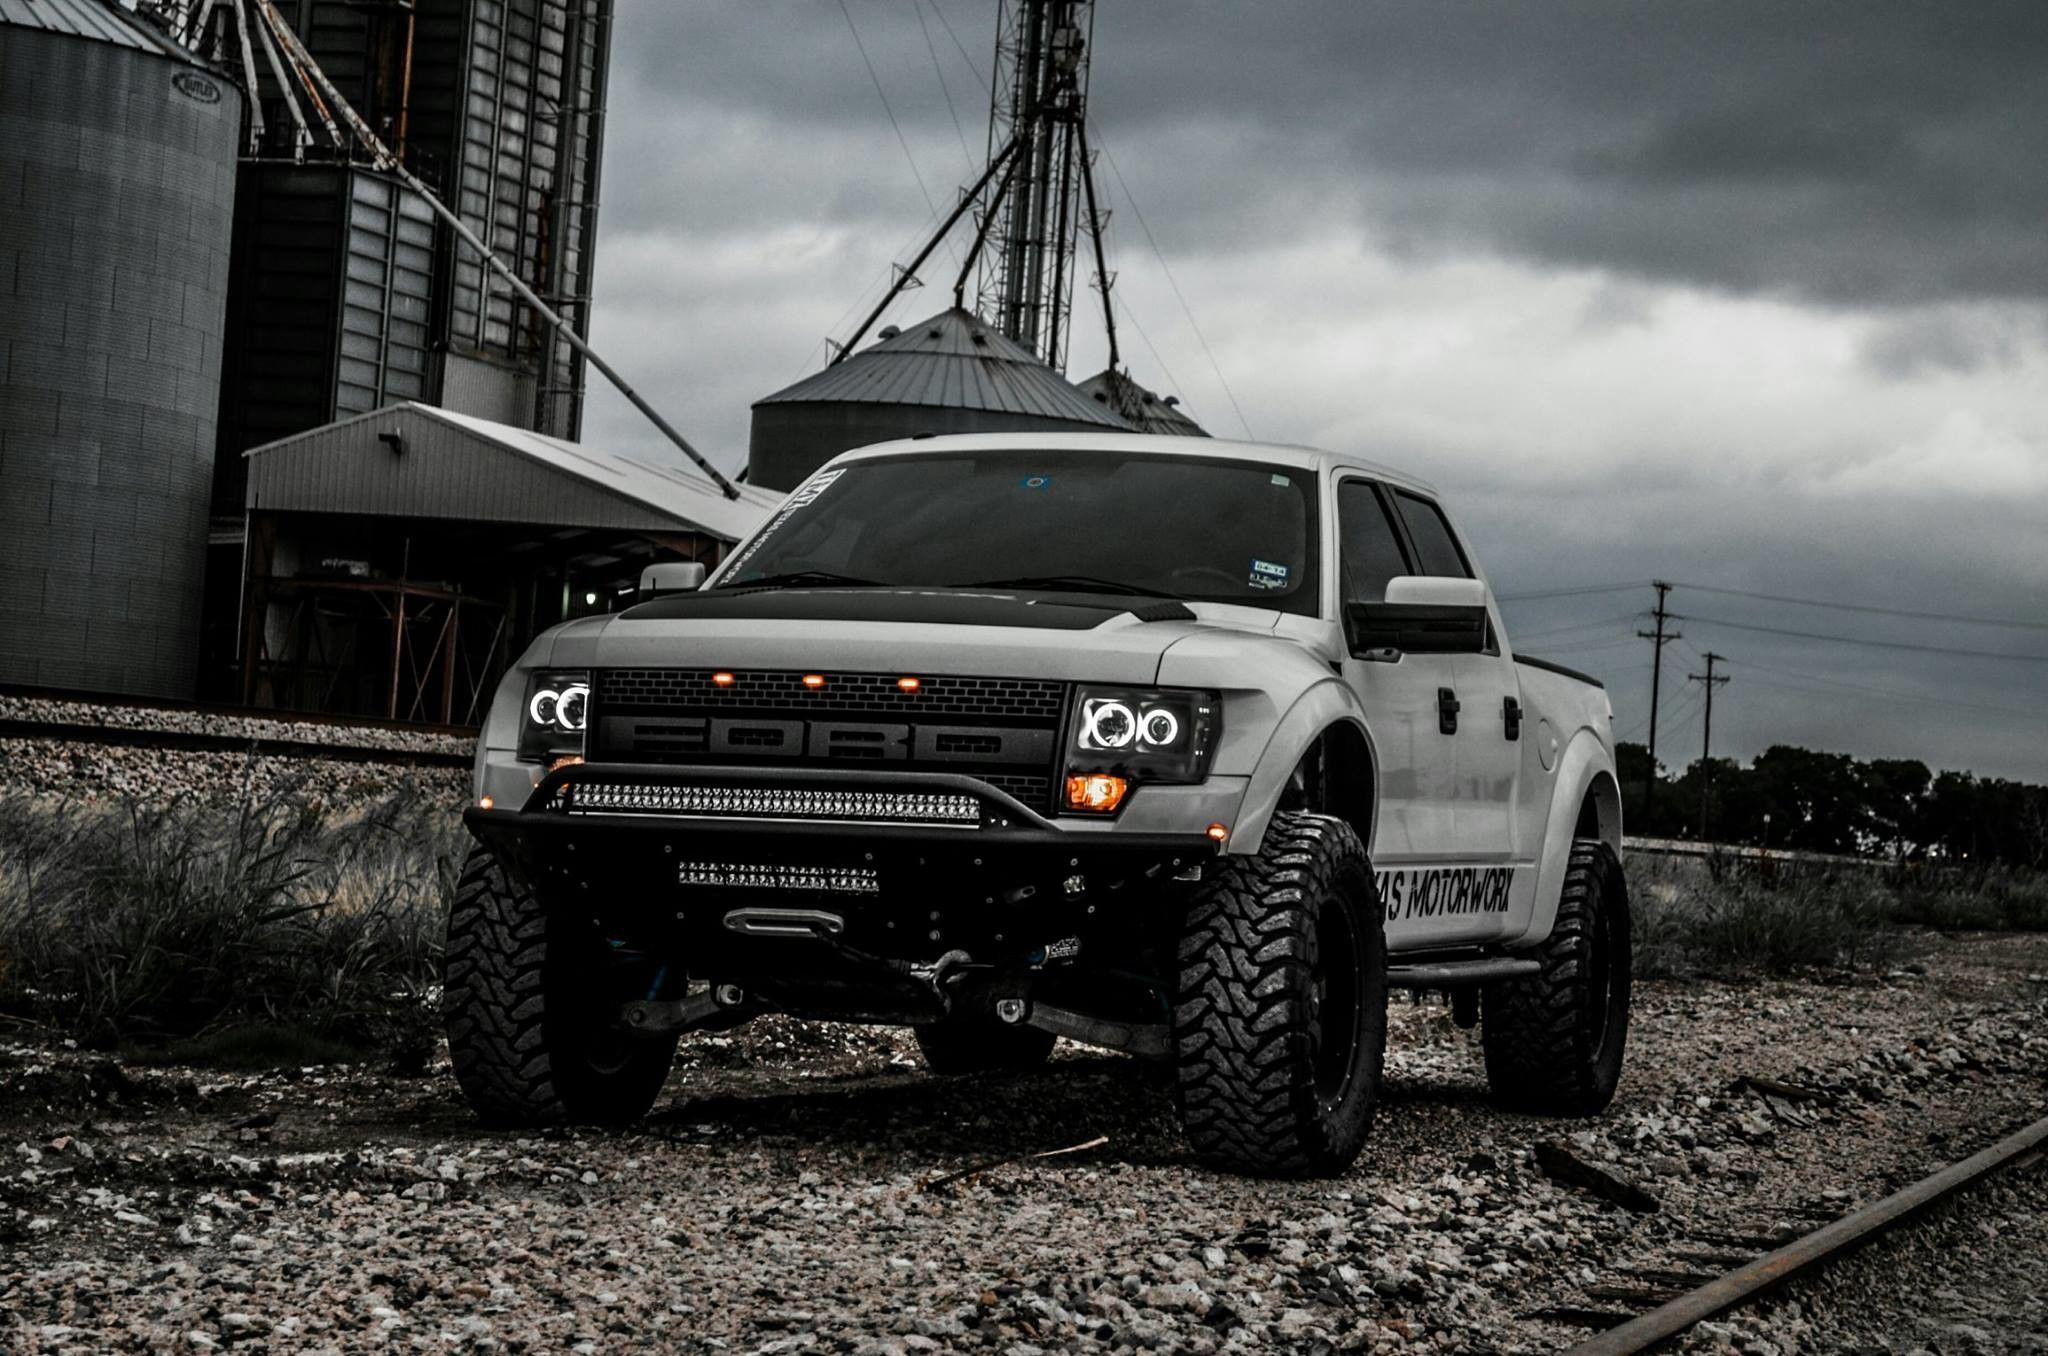 Ford Raptor Wallpaper HD (74+ images)